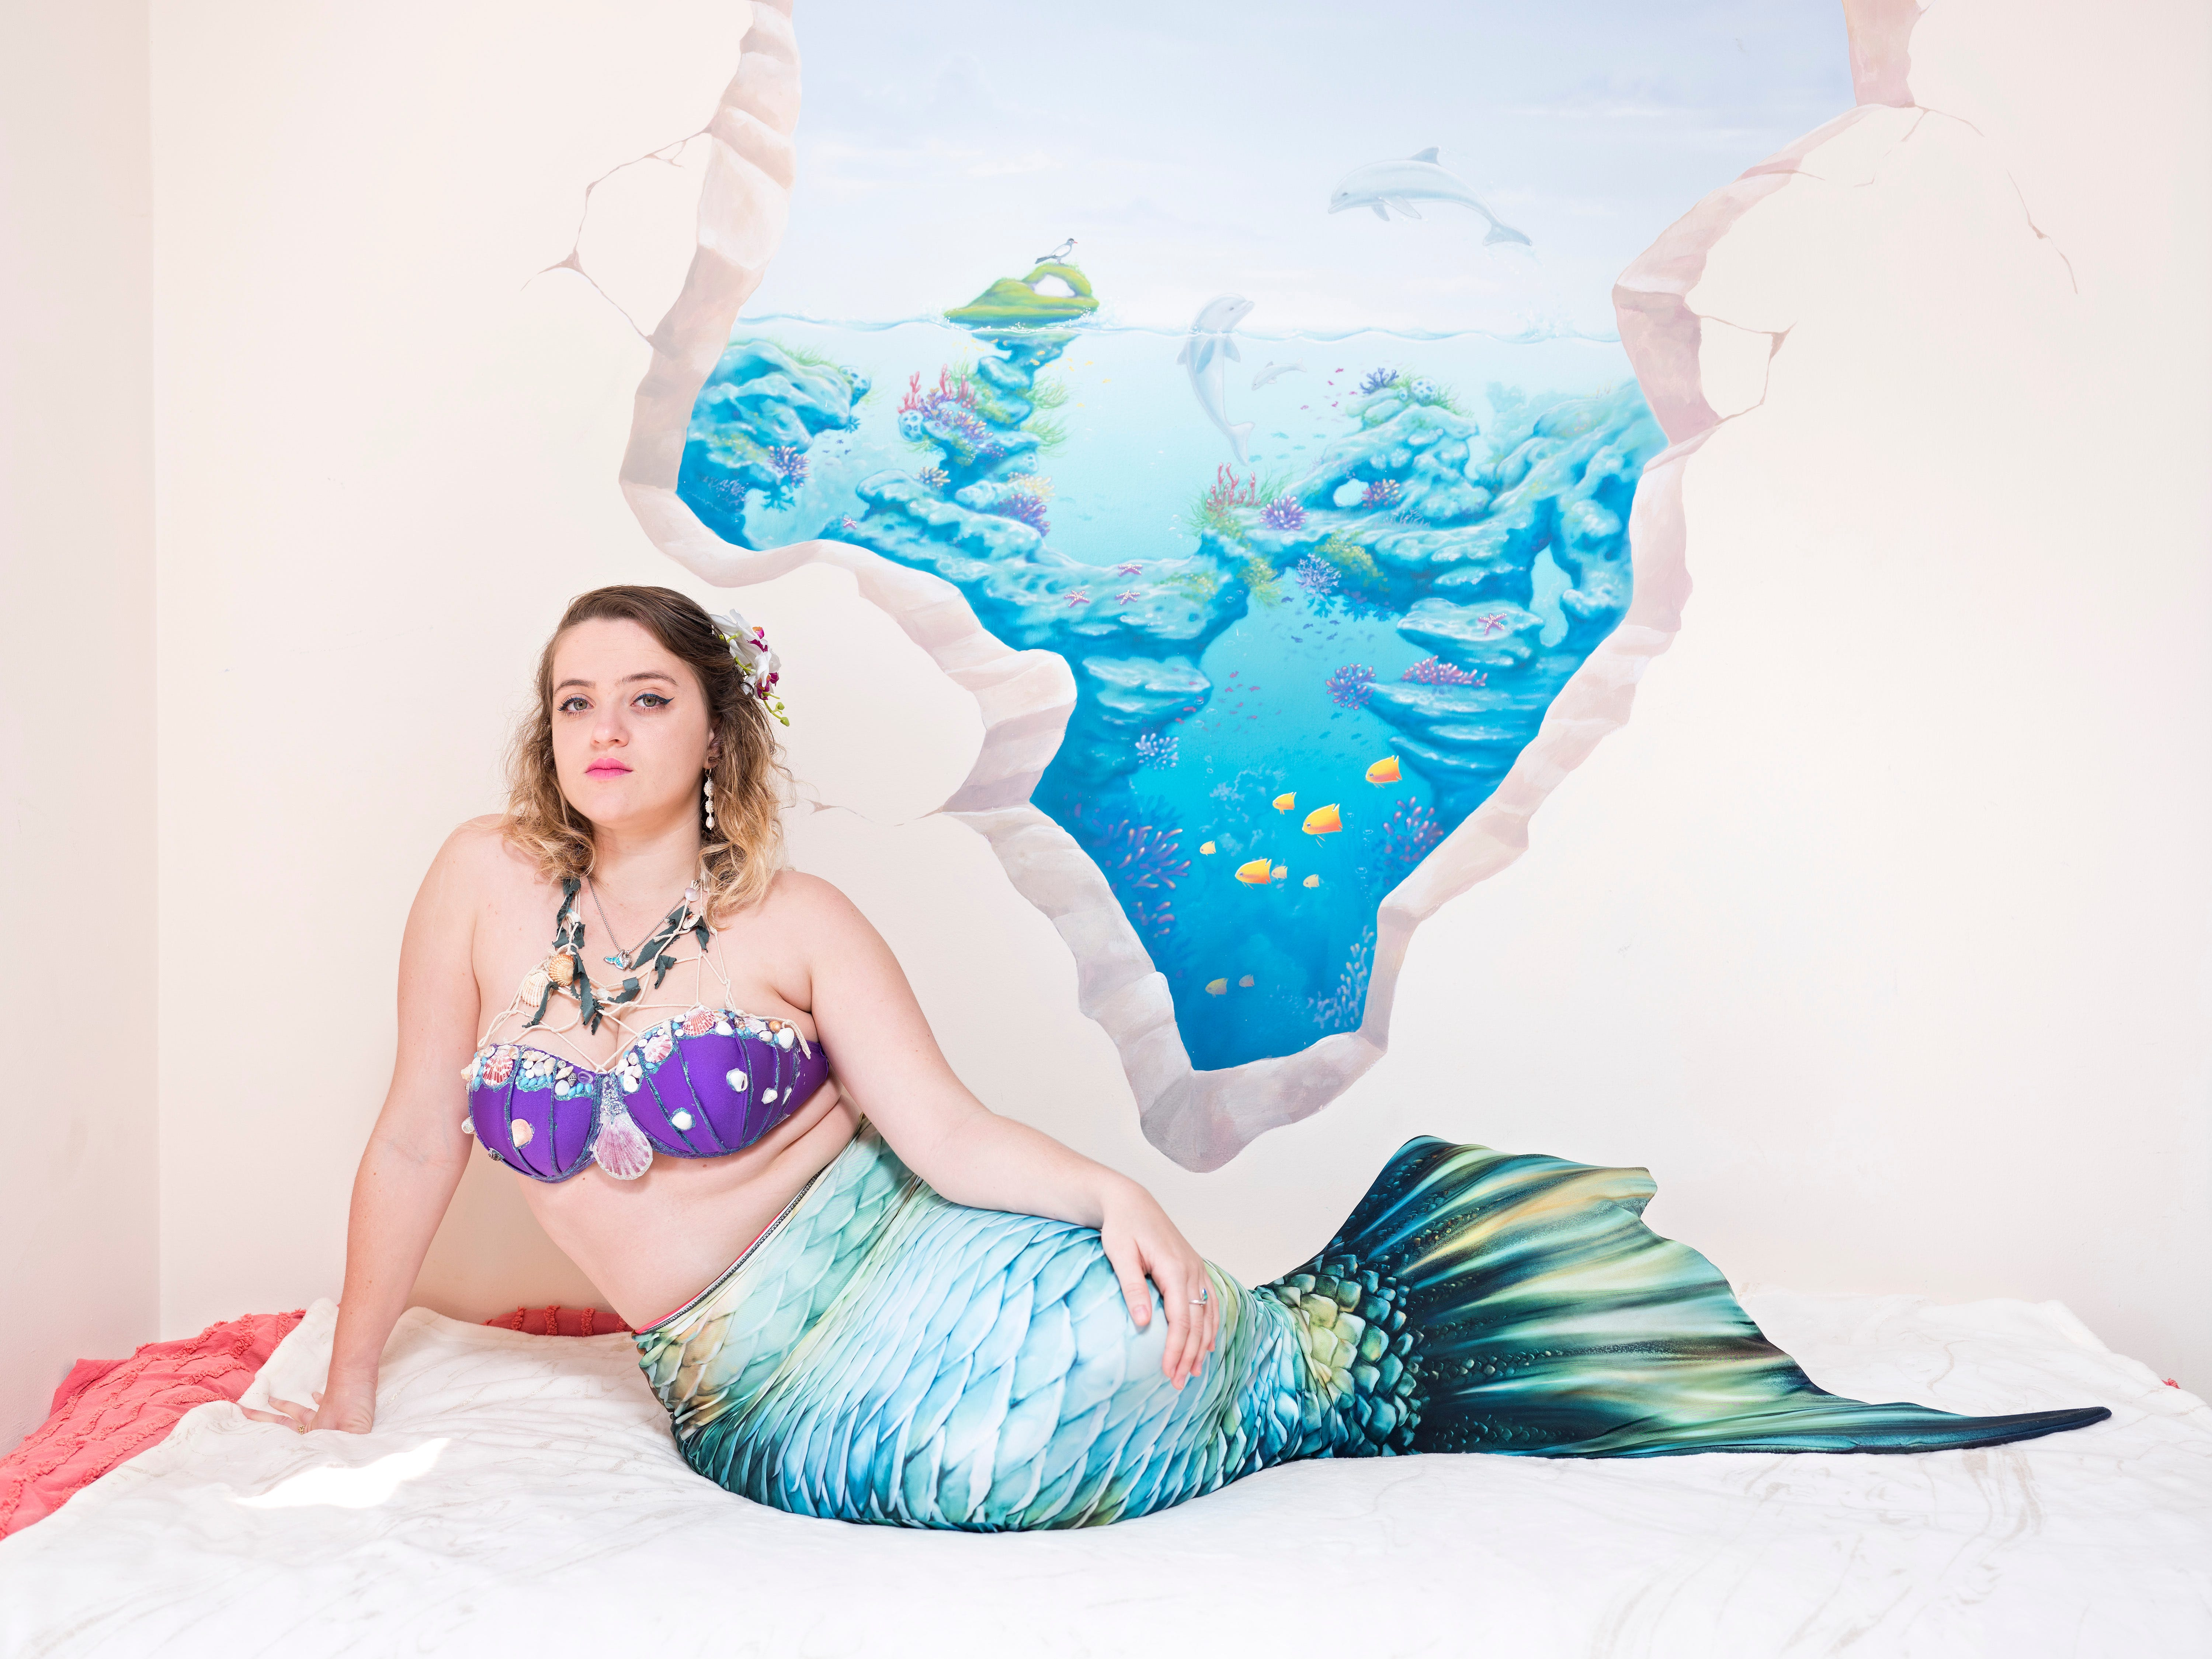 In this Wednesday, March. 6, 2019 photo, Michelle Koretsky, a member of the Israeli Mermaid Community, poses for a portrait as she wears a mermaid tail at her home in Ra'anana, Israel.